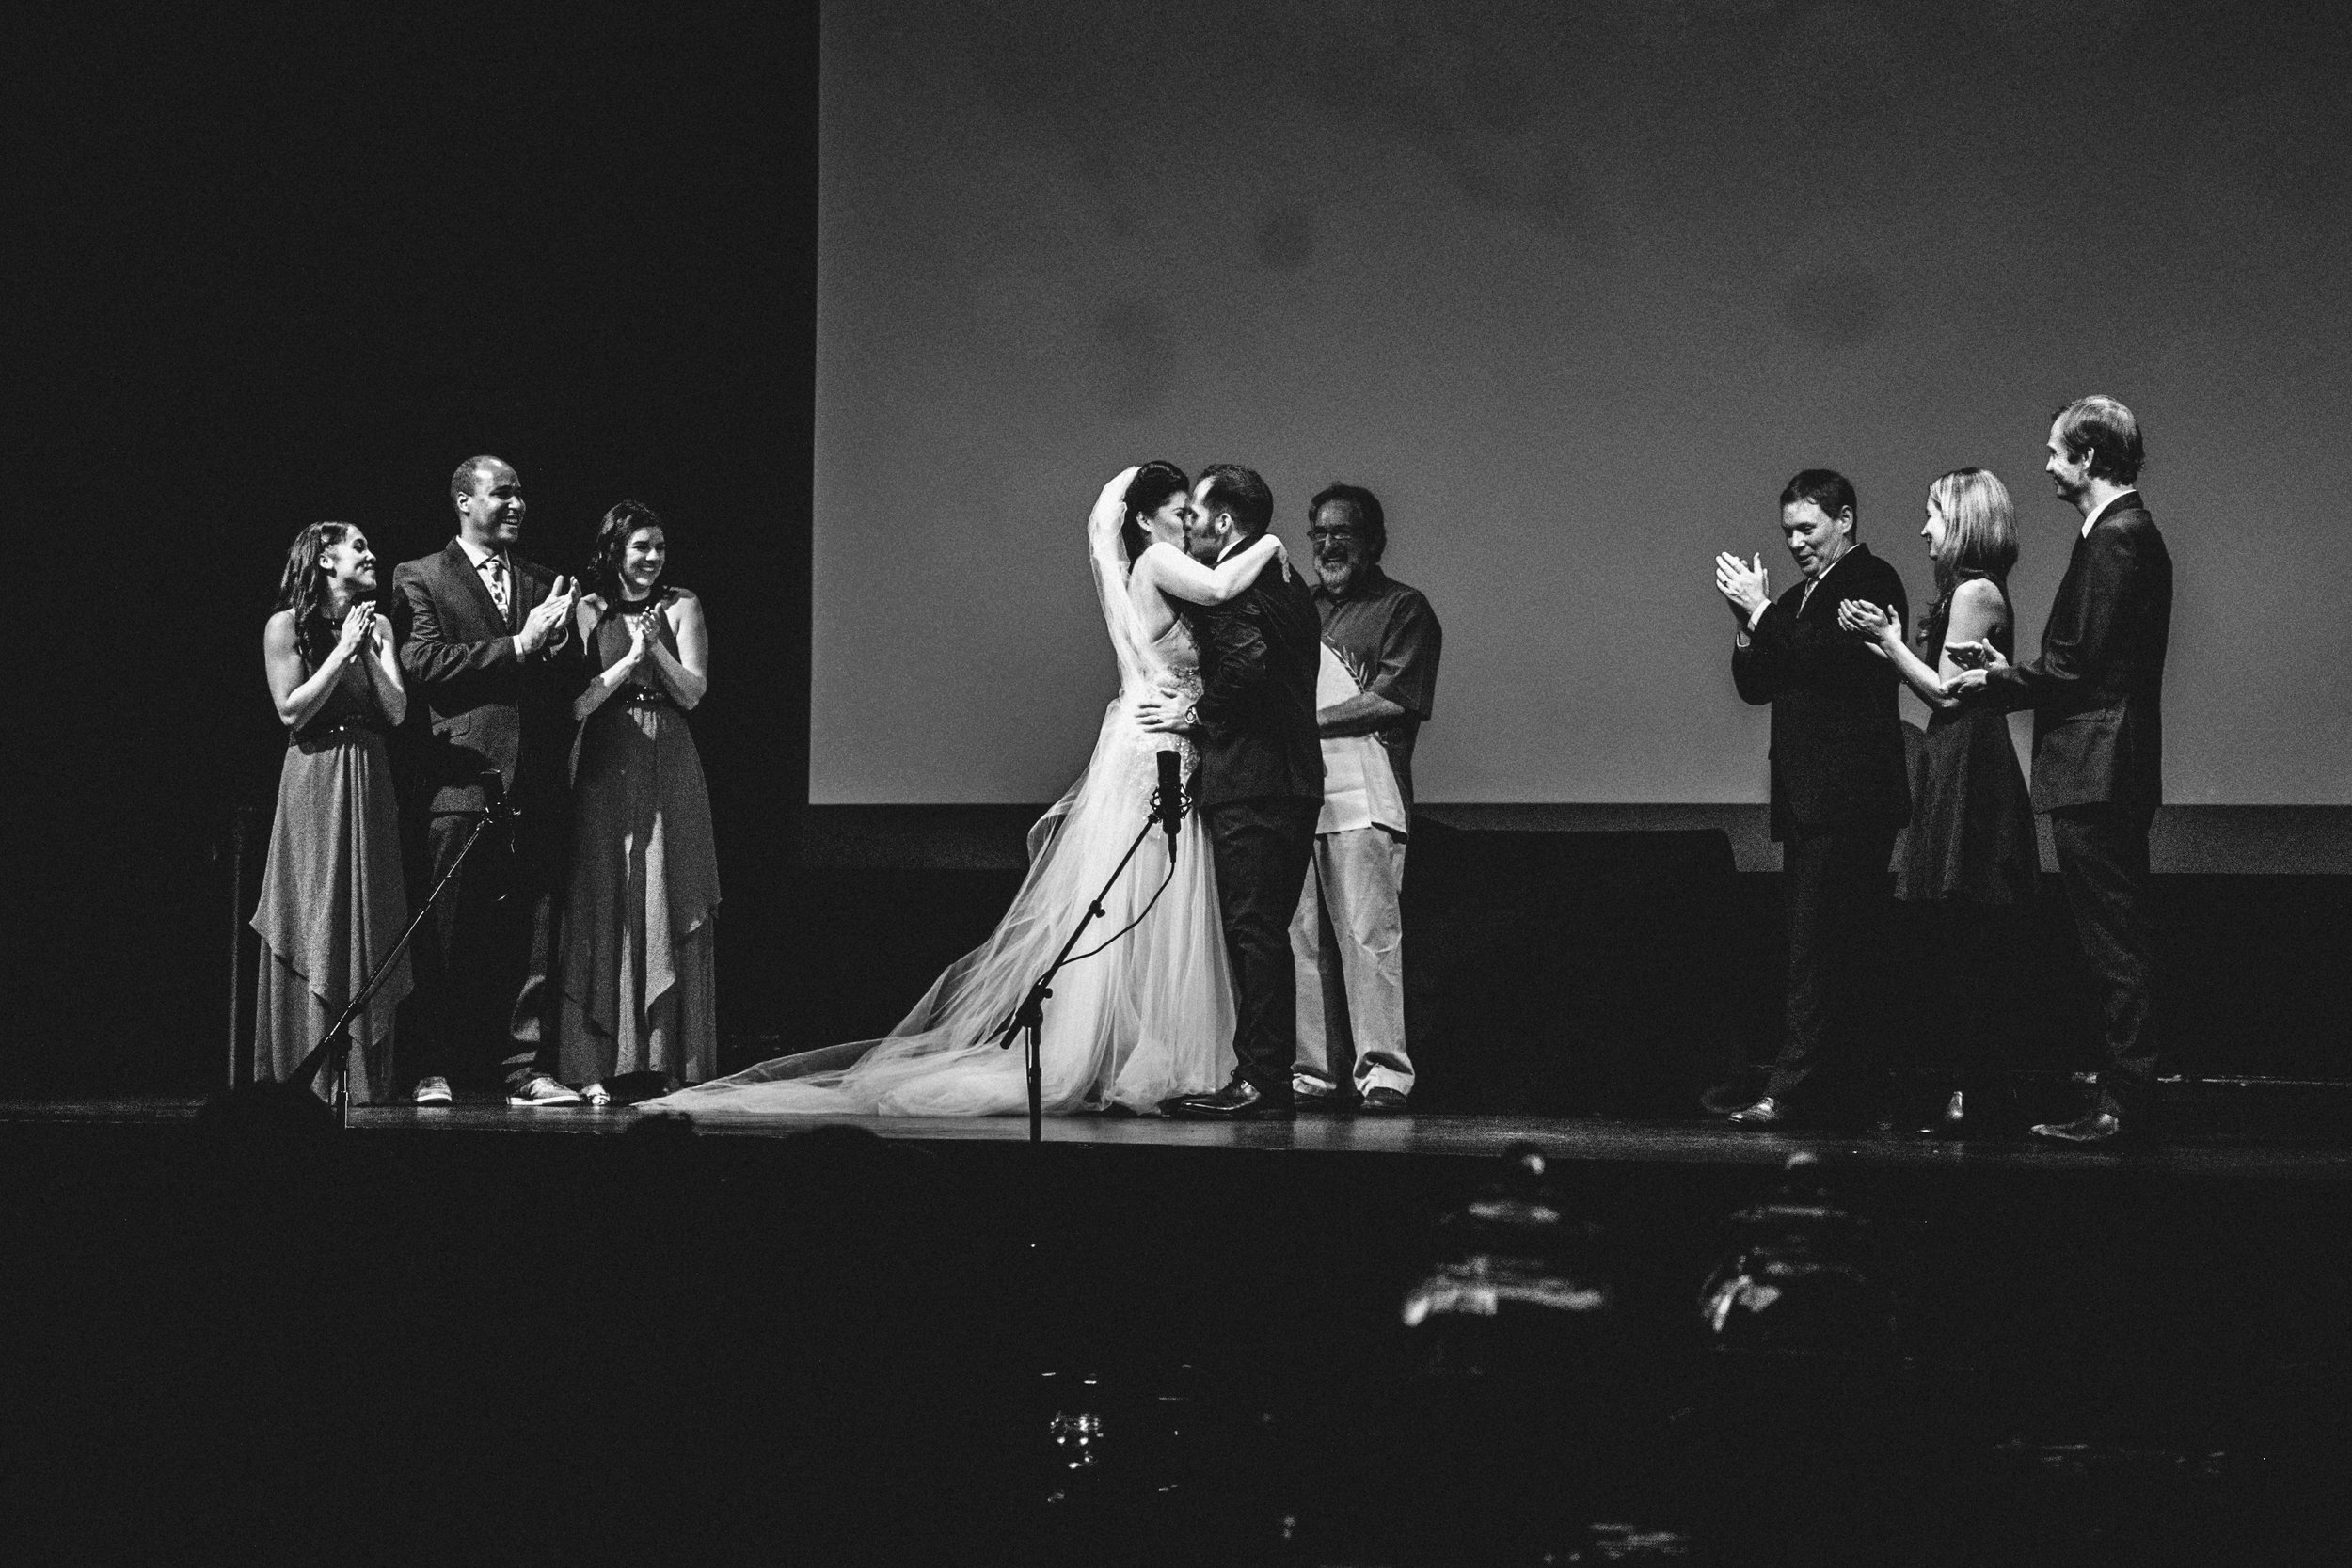 bre thurston photography | san francisco bay area california | wedding photographer | theater venue movie premiere theme wedding